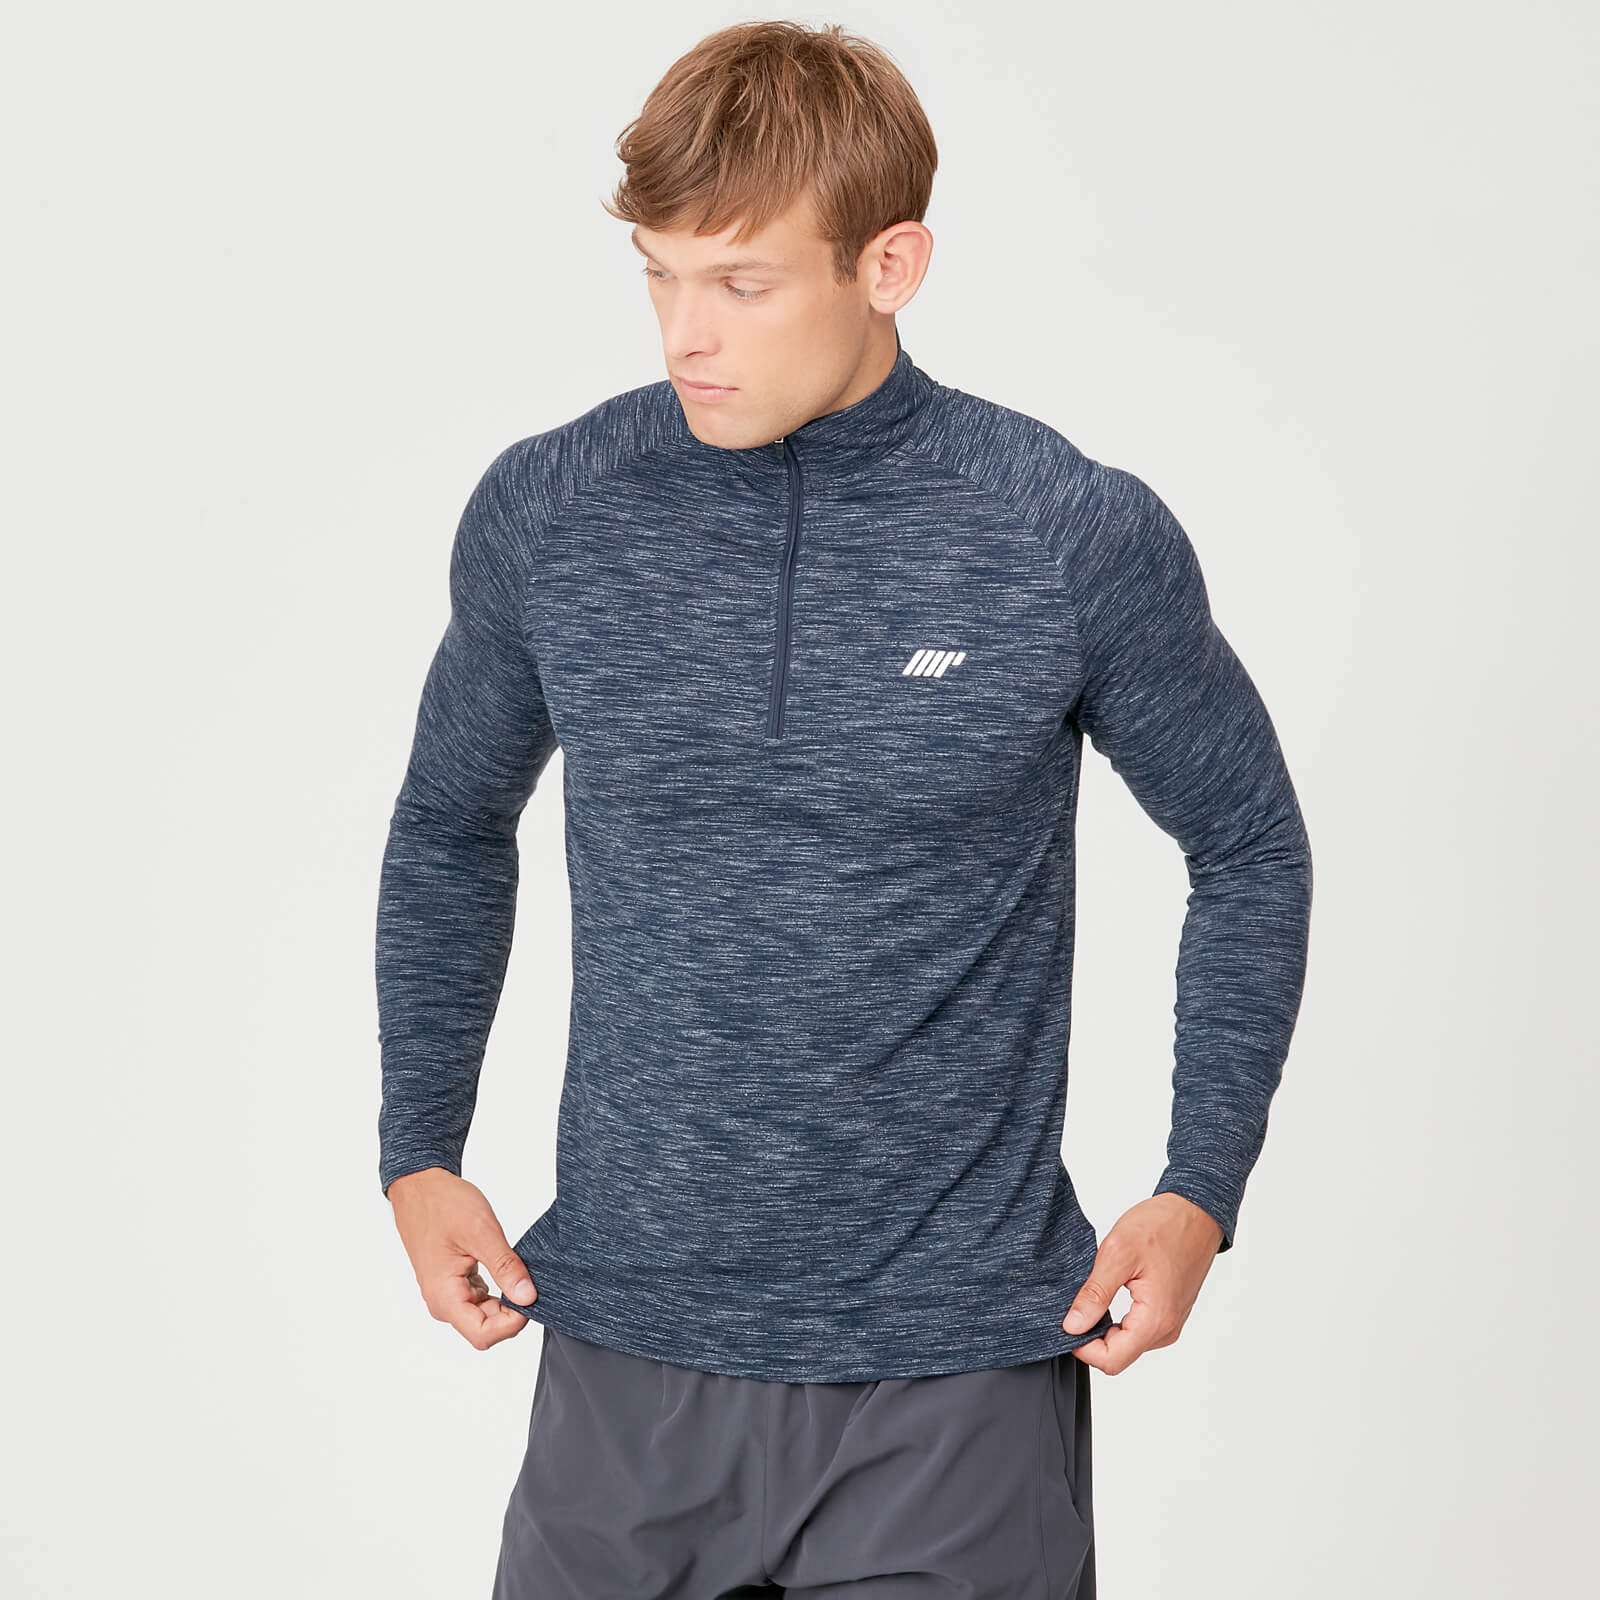 Performance 1/4 Zip Top - Navy Marl - XS